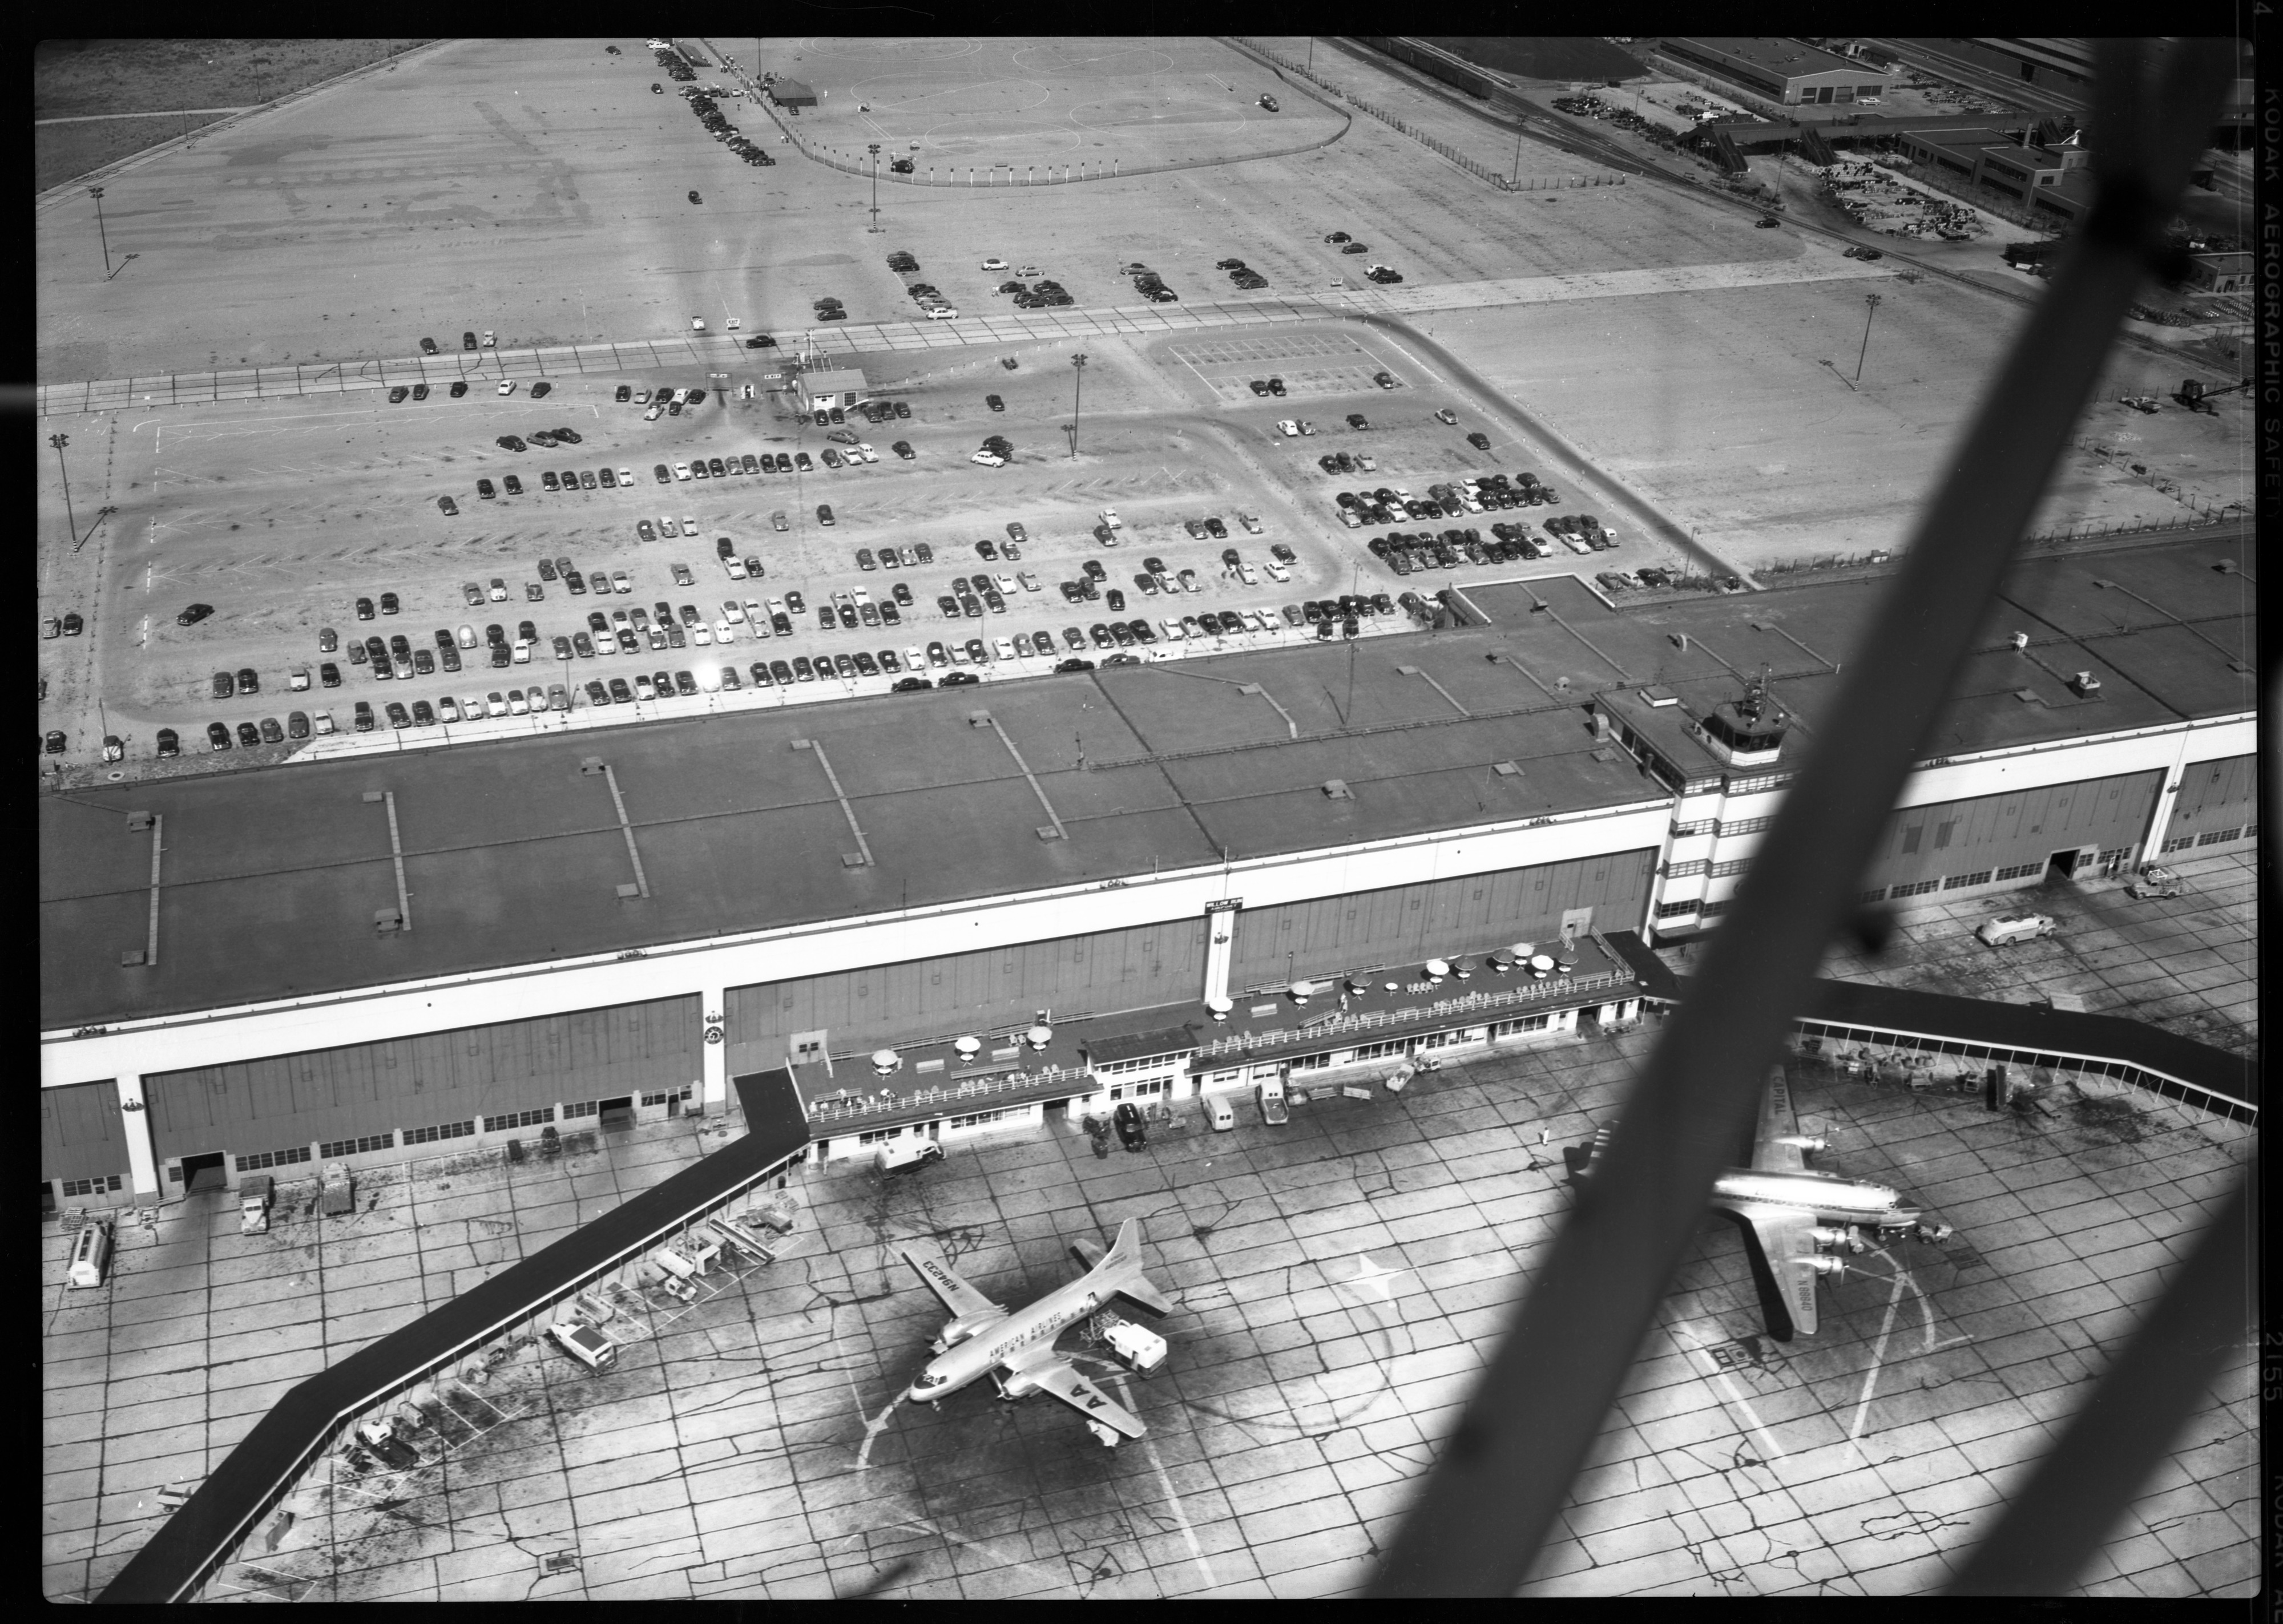 Aerial Photograph of Willow Run Airport, July 1950 image